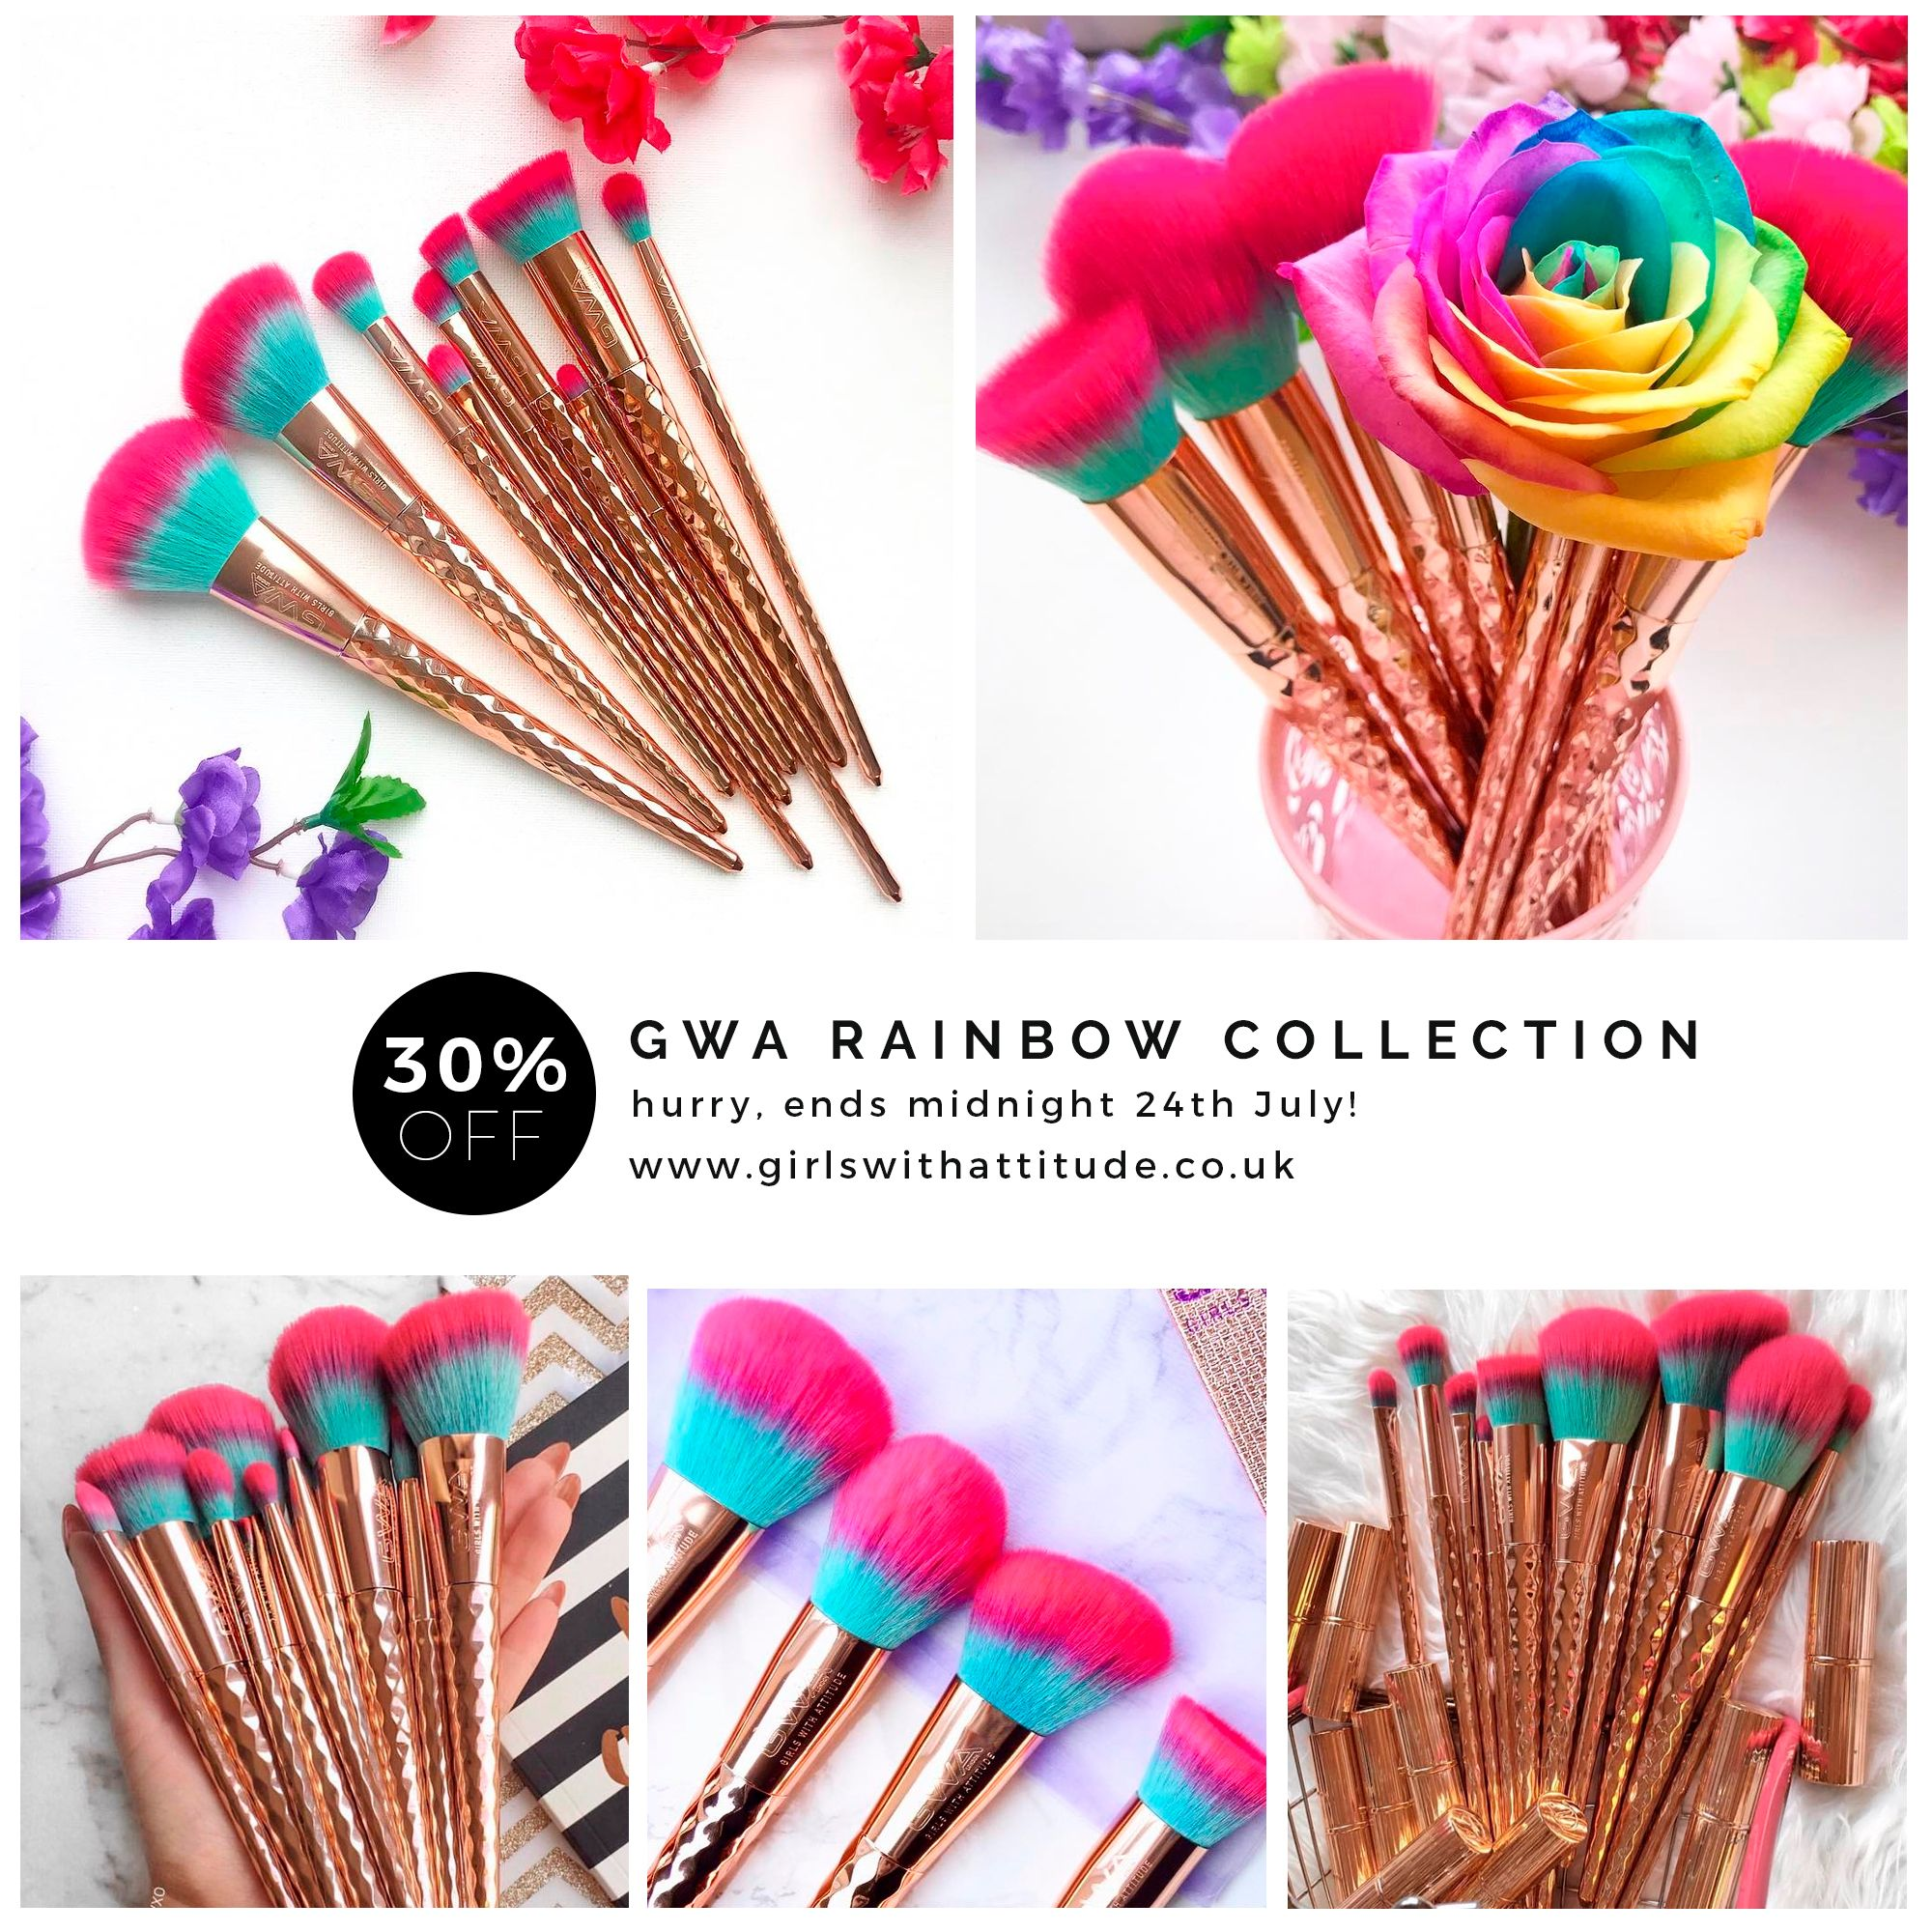 The Rainbow Collection 10pcs Makeup Brush Set in 2020